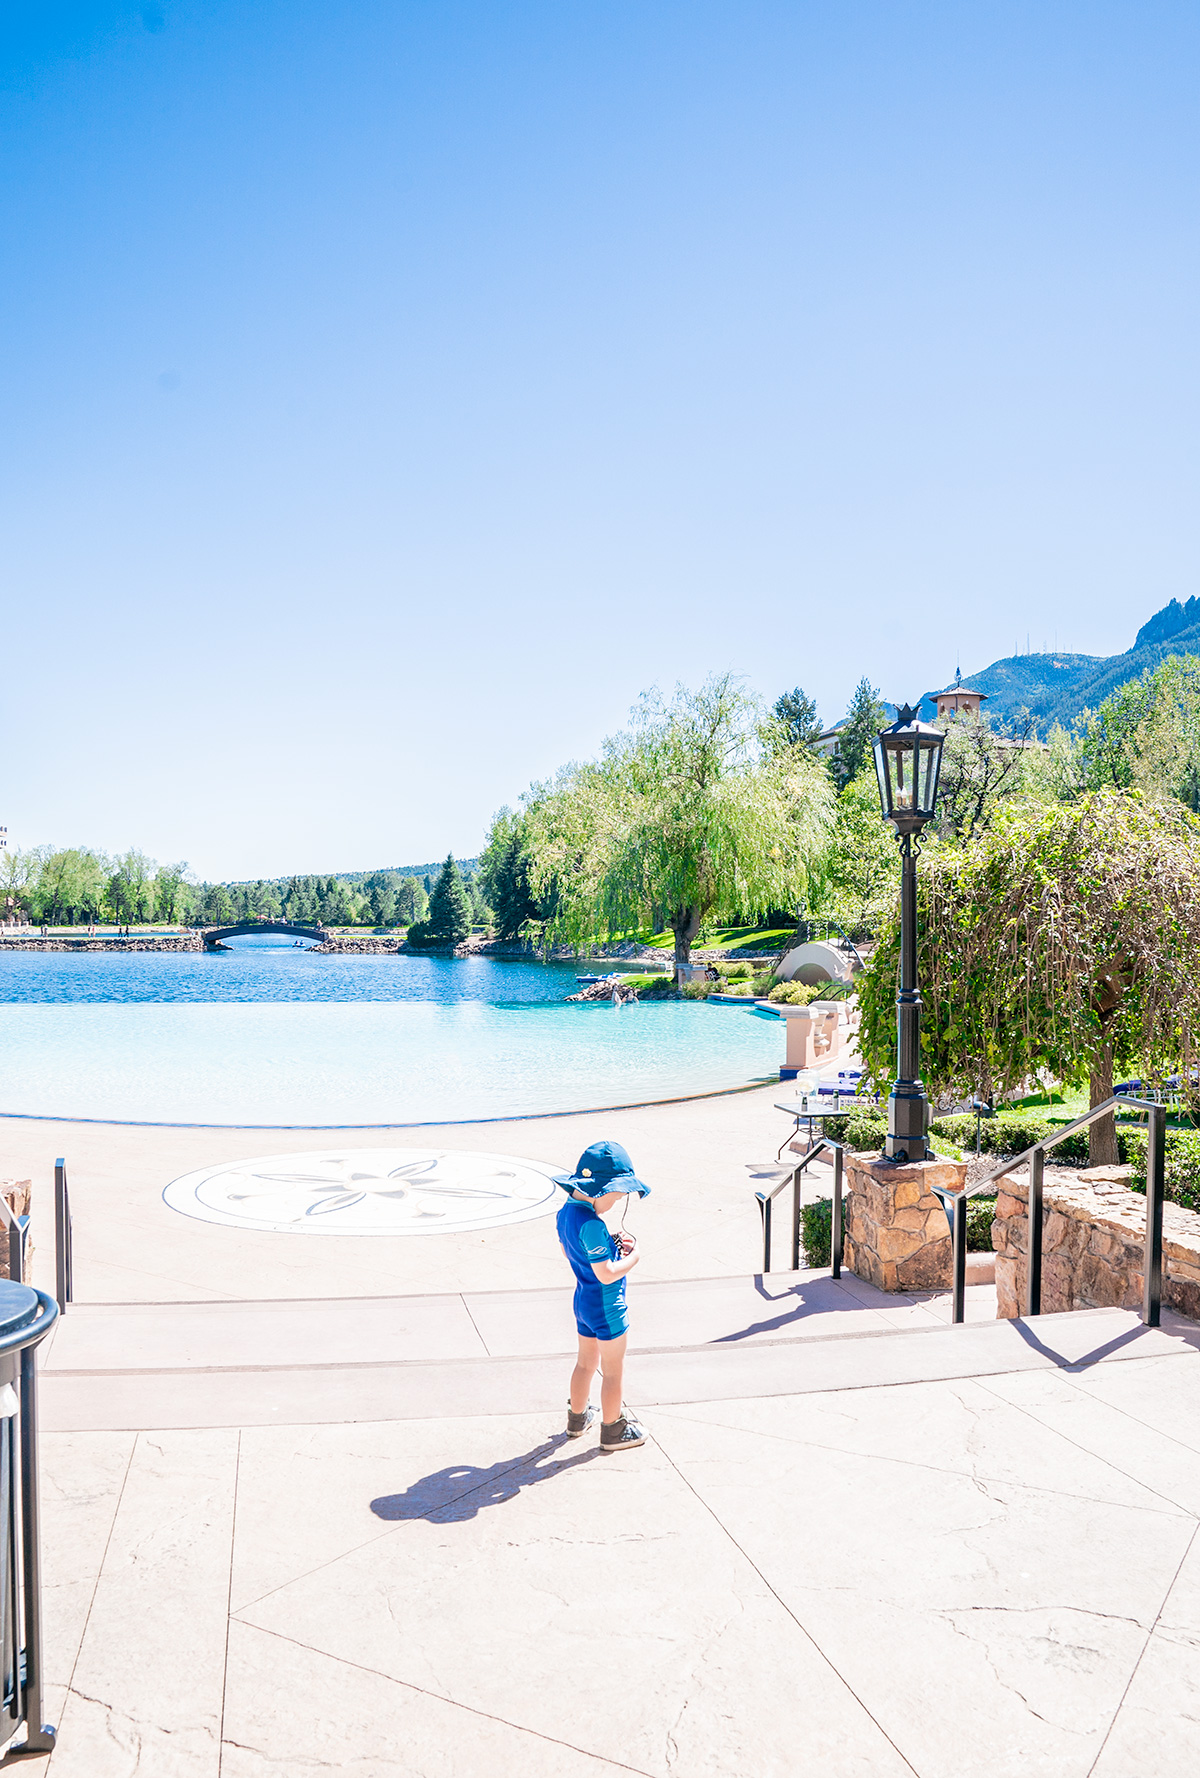 Broadmoor-Pool-Colorado-Springs